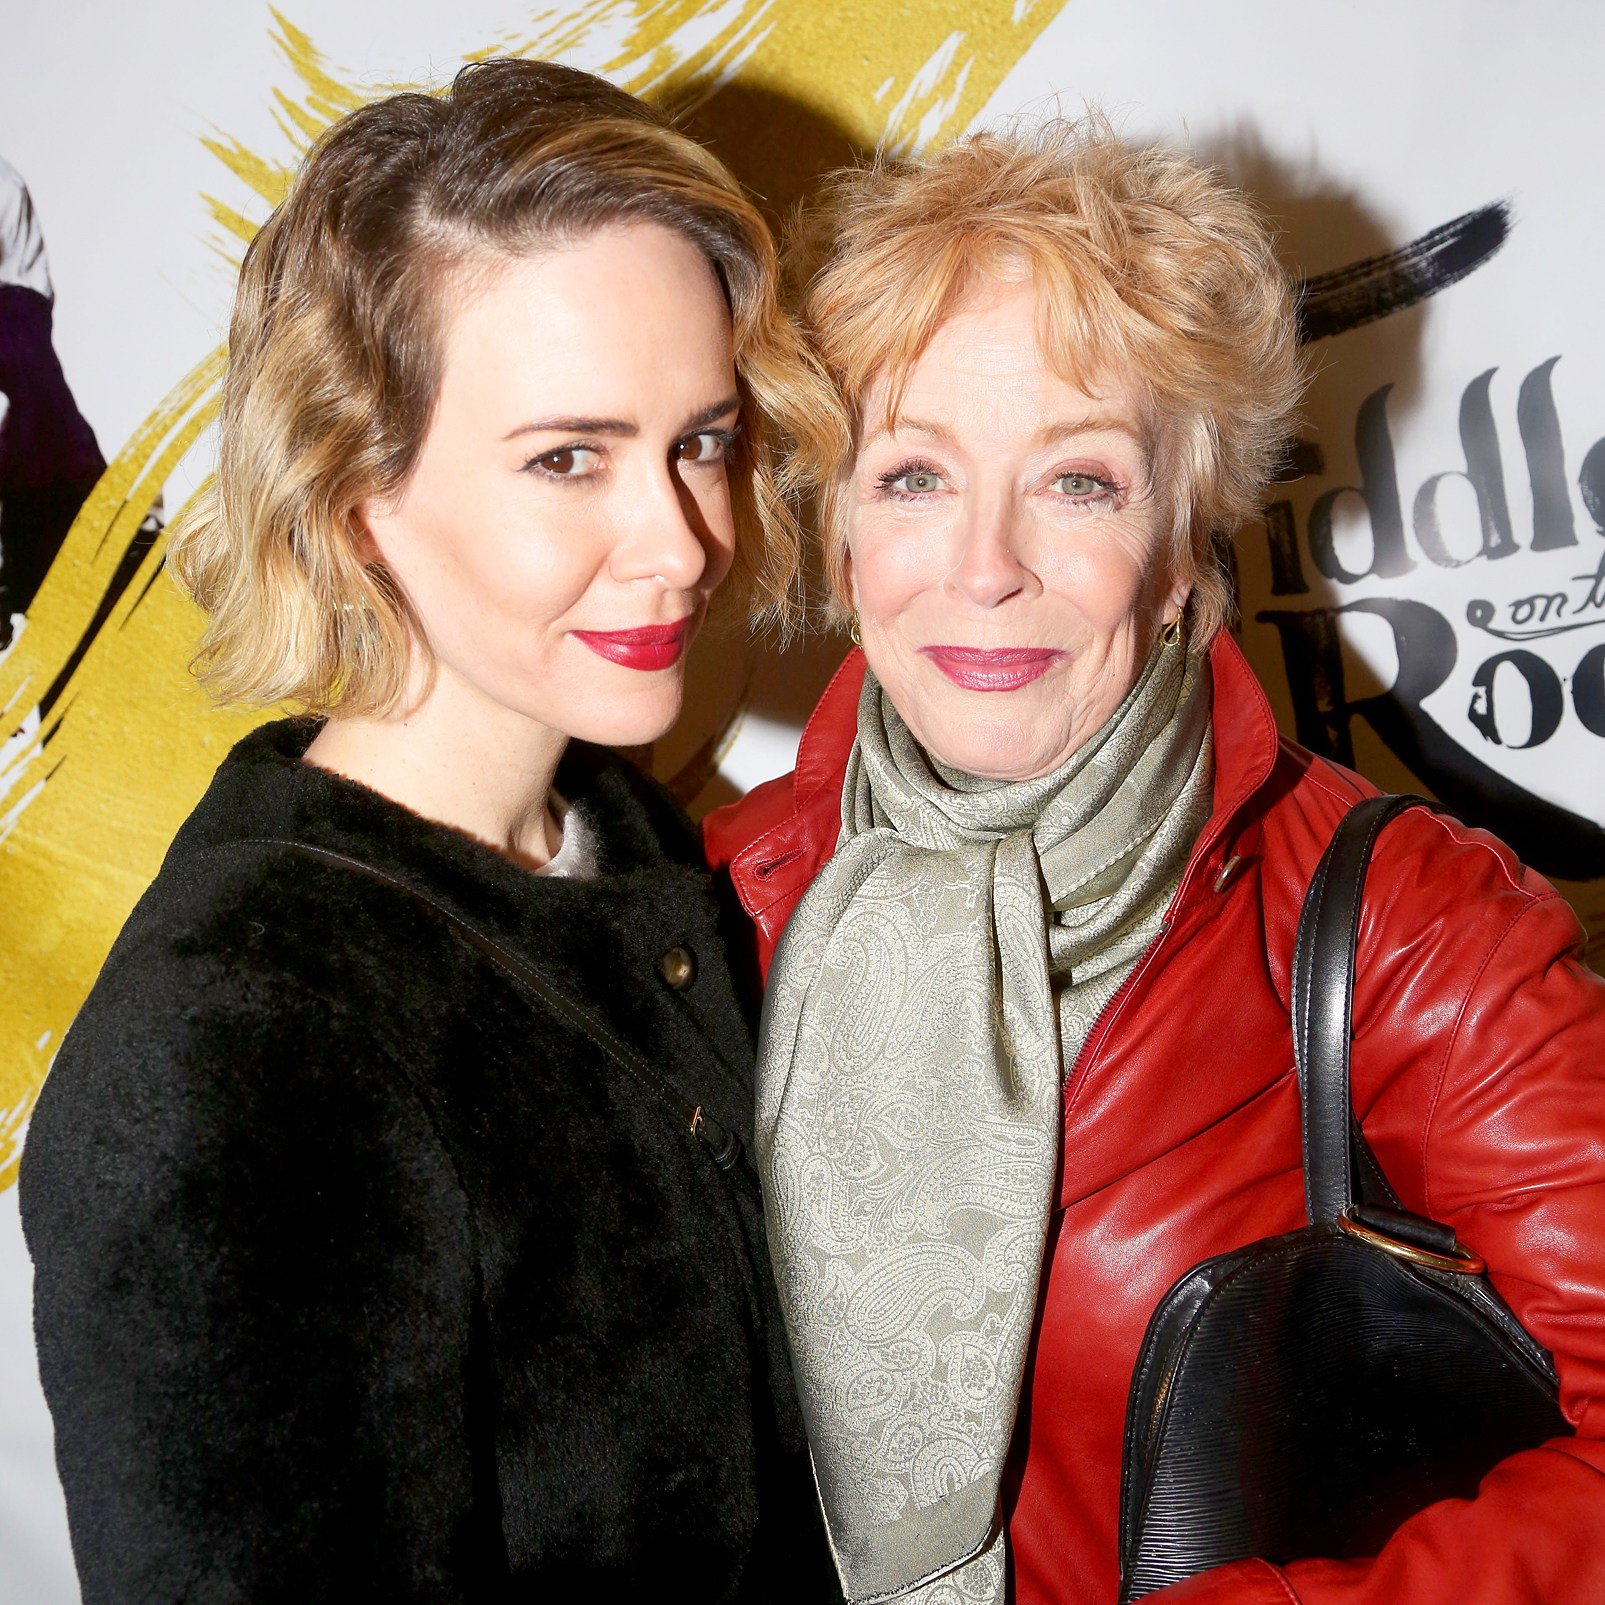 """Sarah Paulson and Holland Taylor attend the opening night for """"Fiddler On The Roof"""" on Broadway at The Broadway Theatre on December 20, 2015 in New York City."""